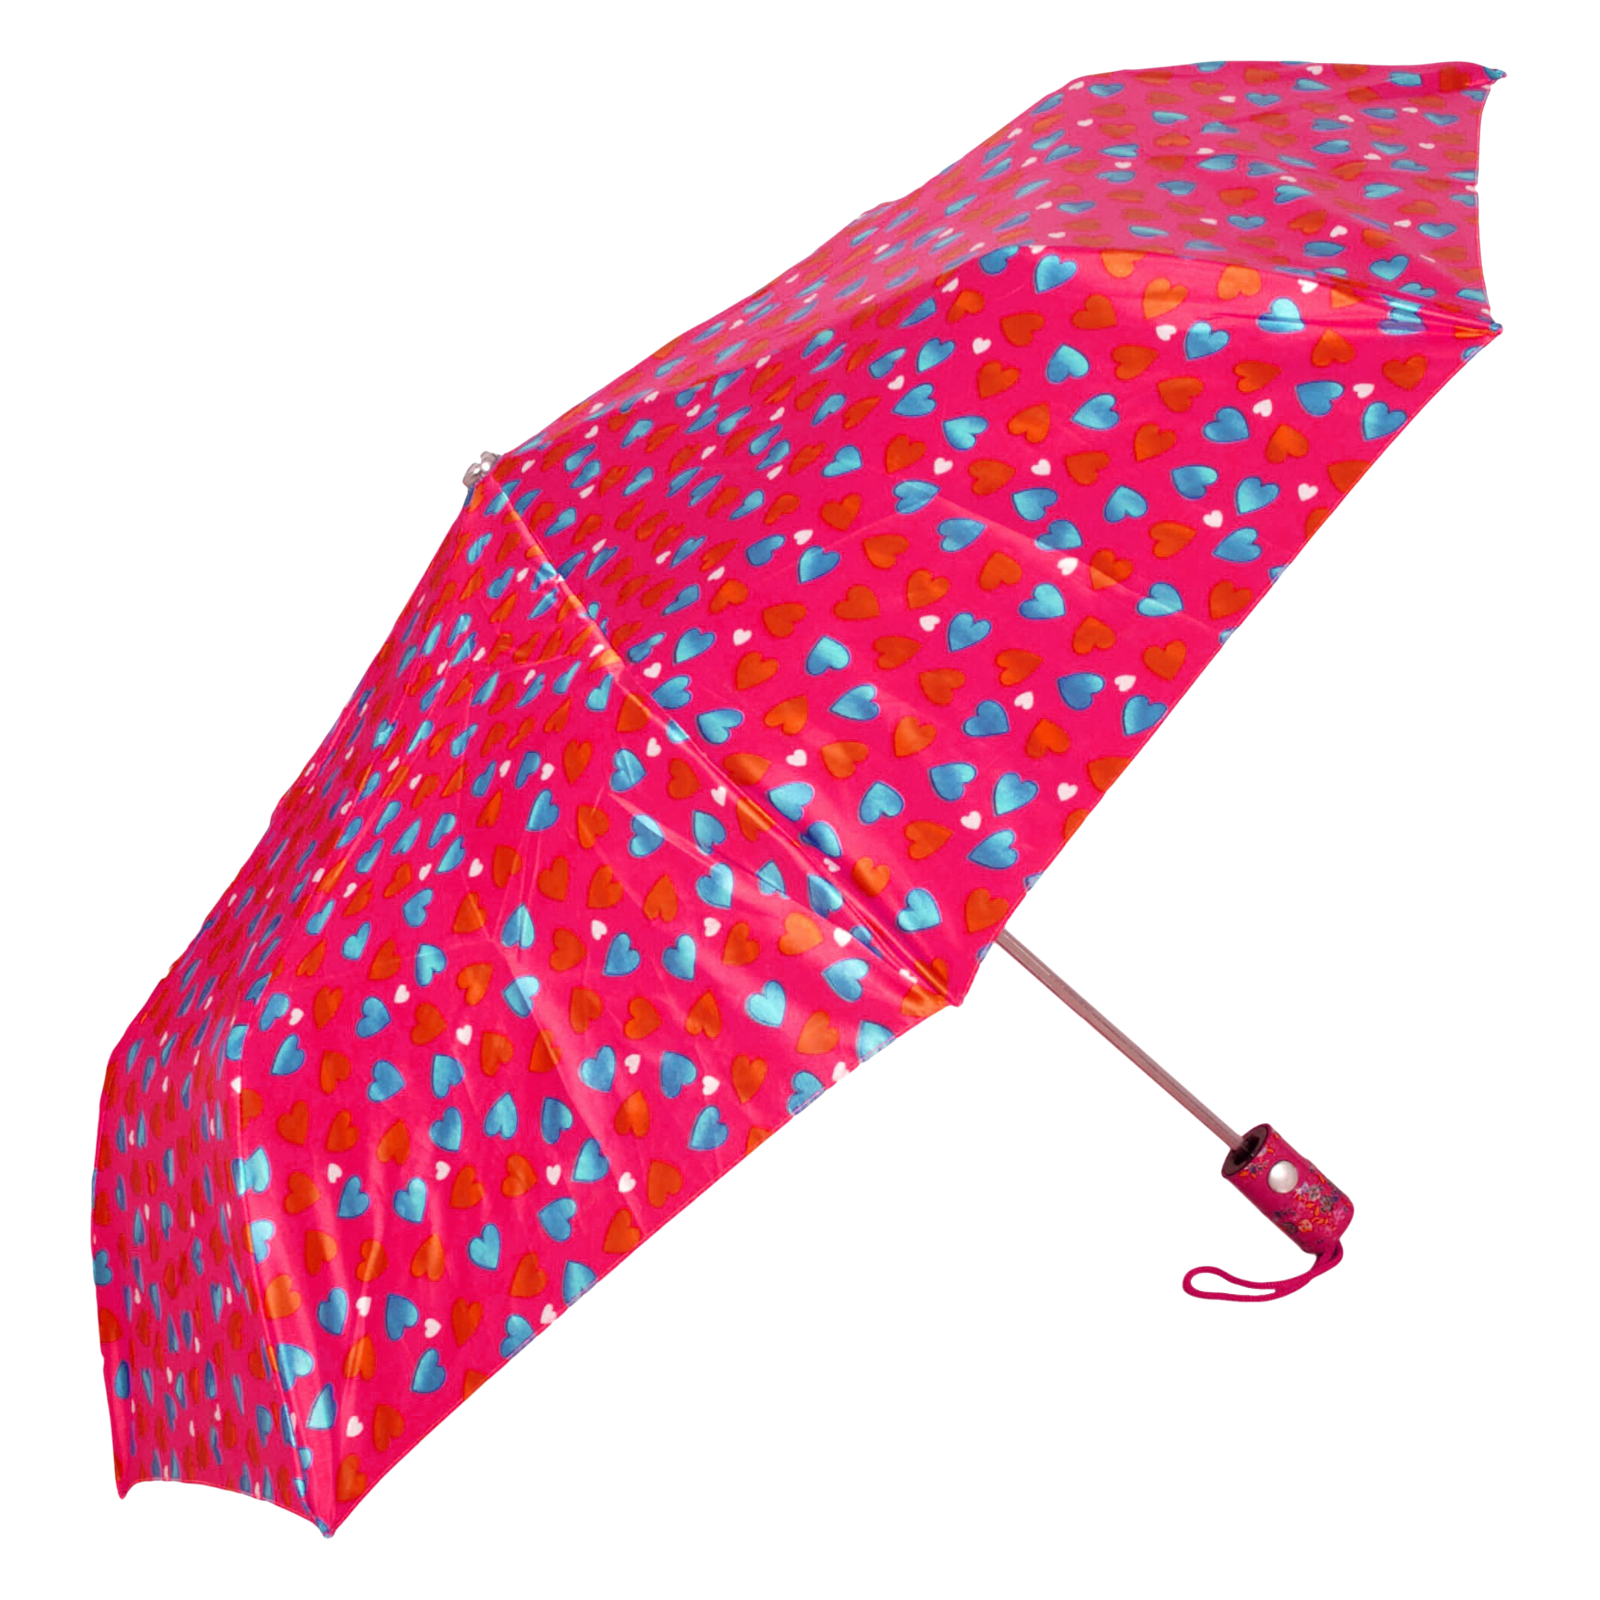 Pink png image purepng. Clipart umbrella red object